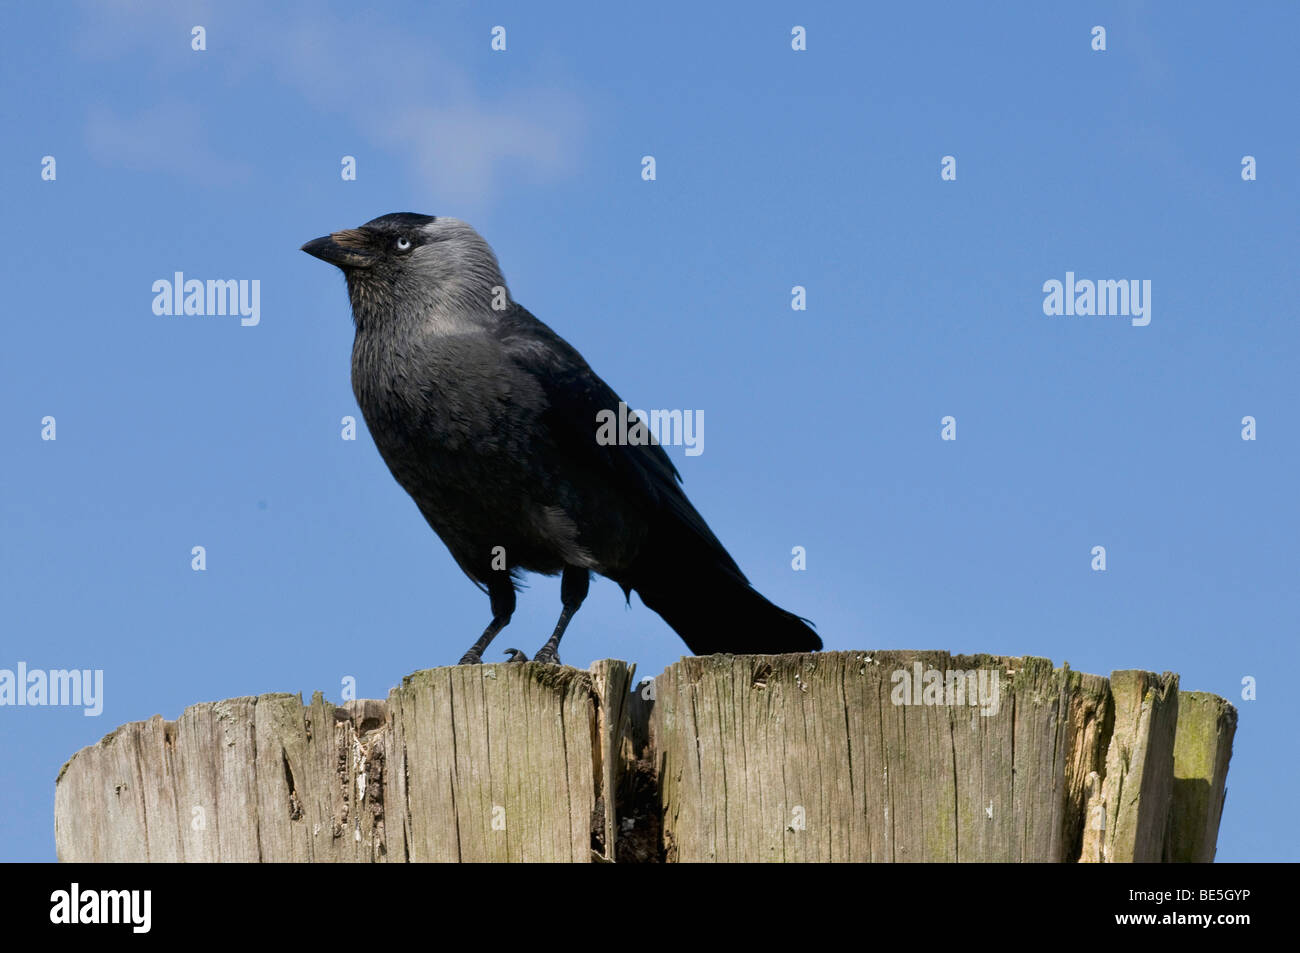 Jackdaw (Corvus monedula) on thick wooden bollard - Stock Image